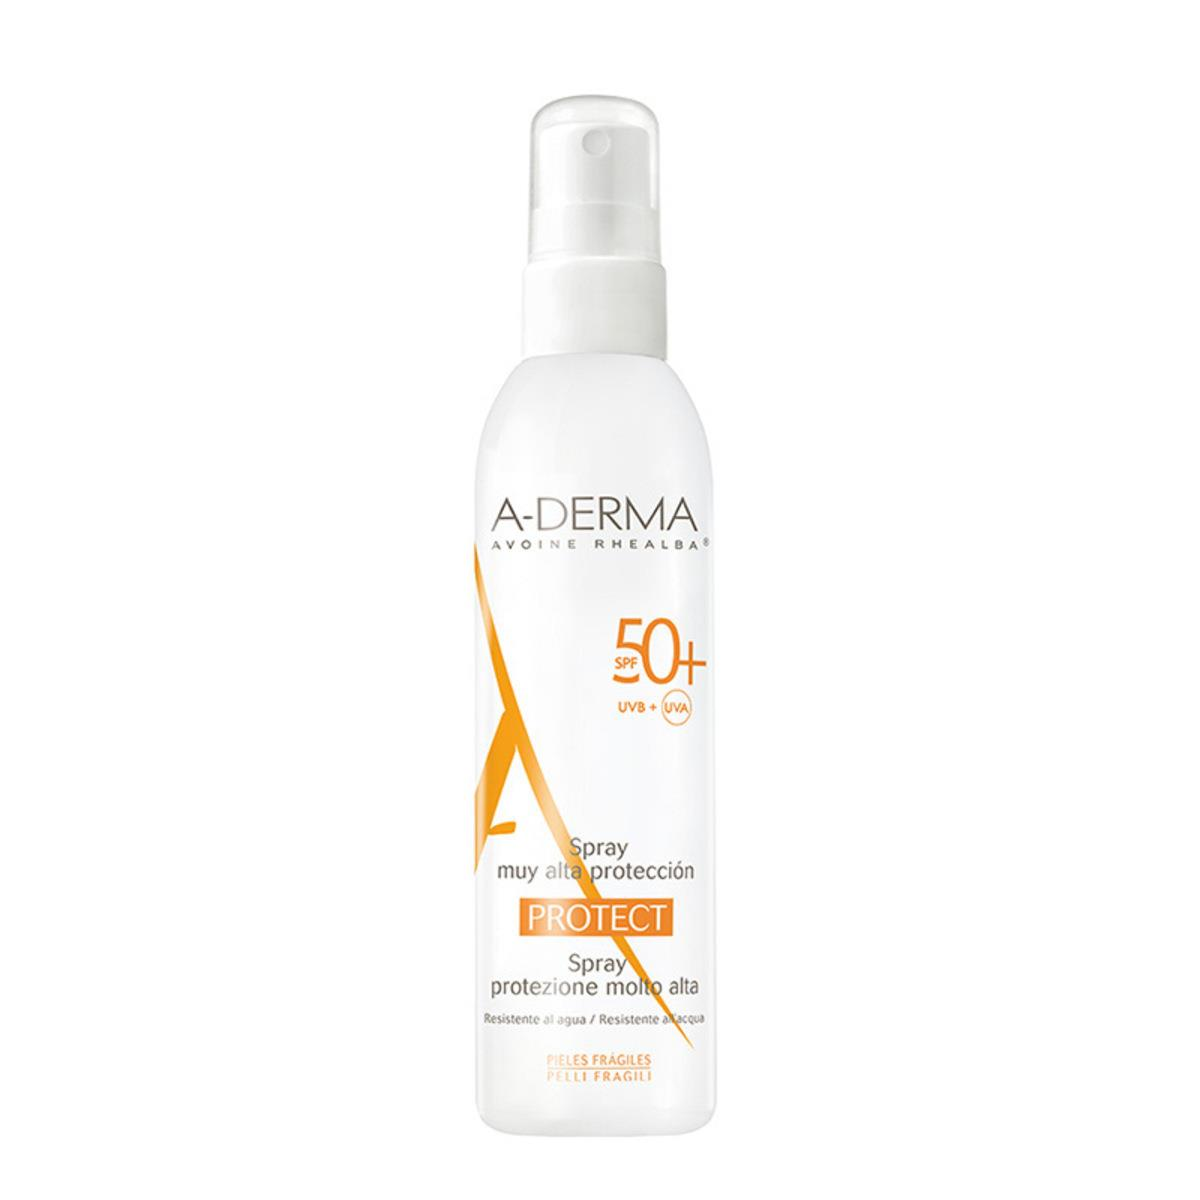 A-Derma Protect Fps 50+ 200Ml